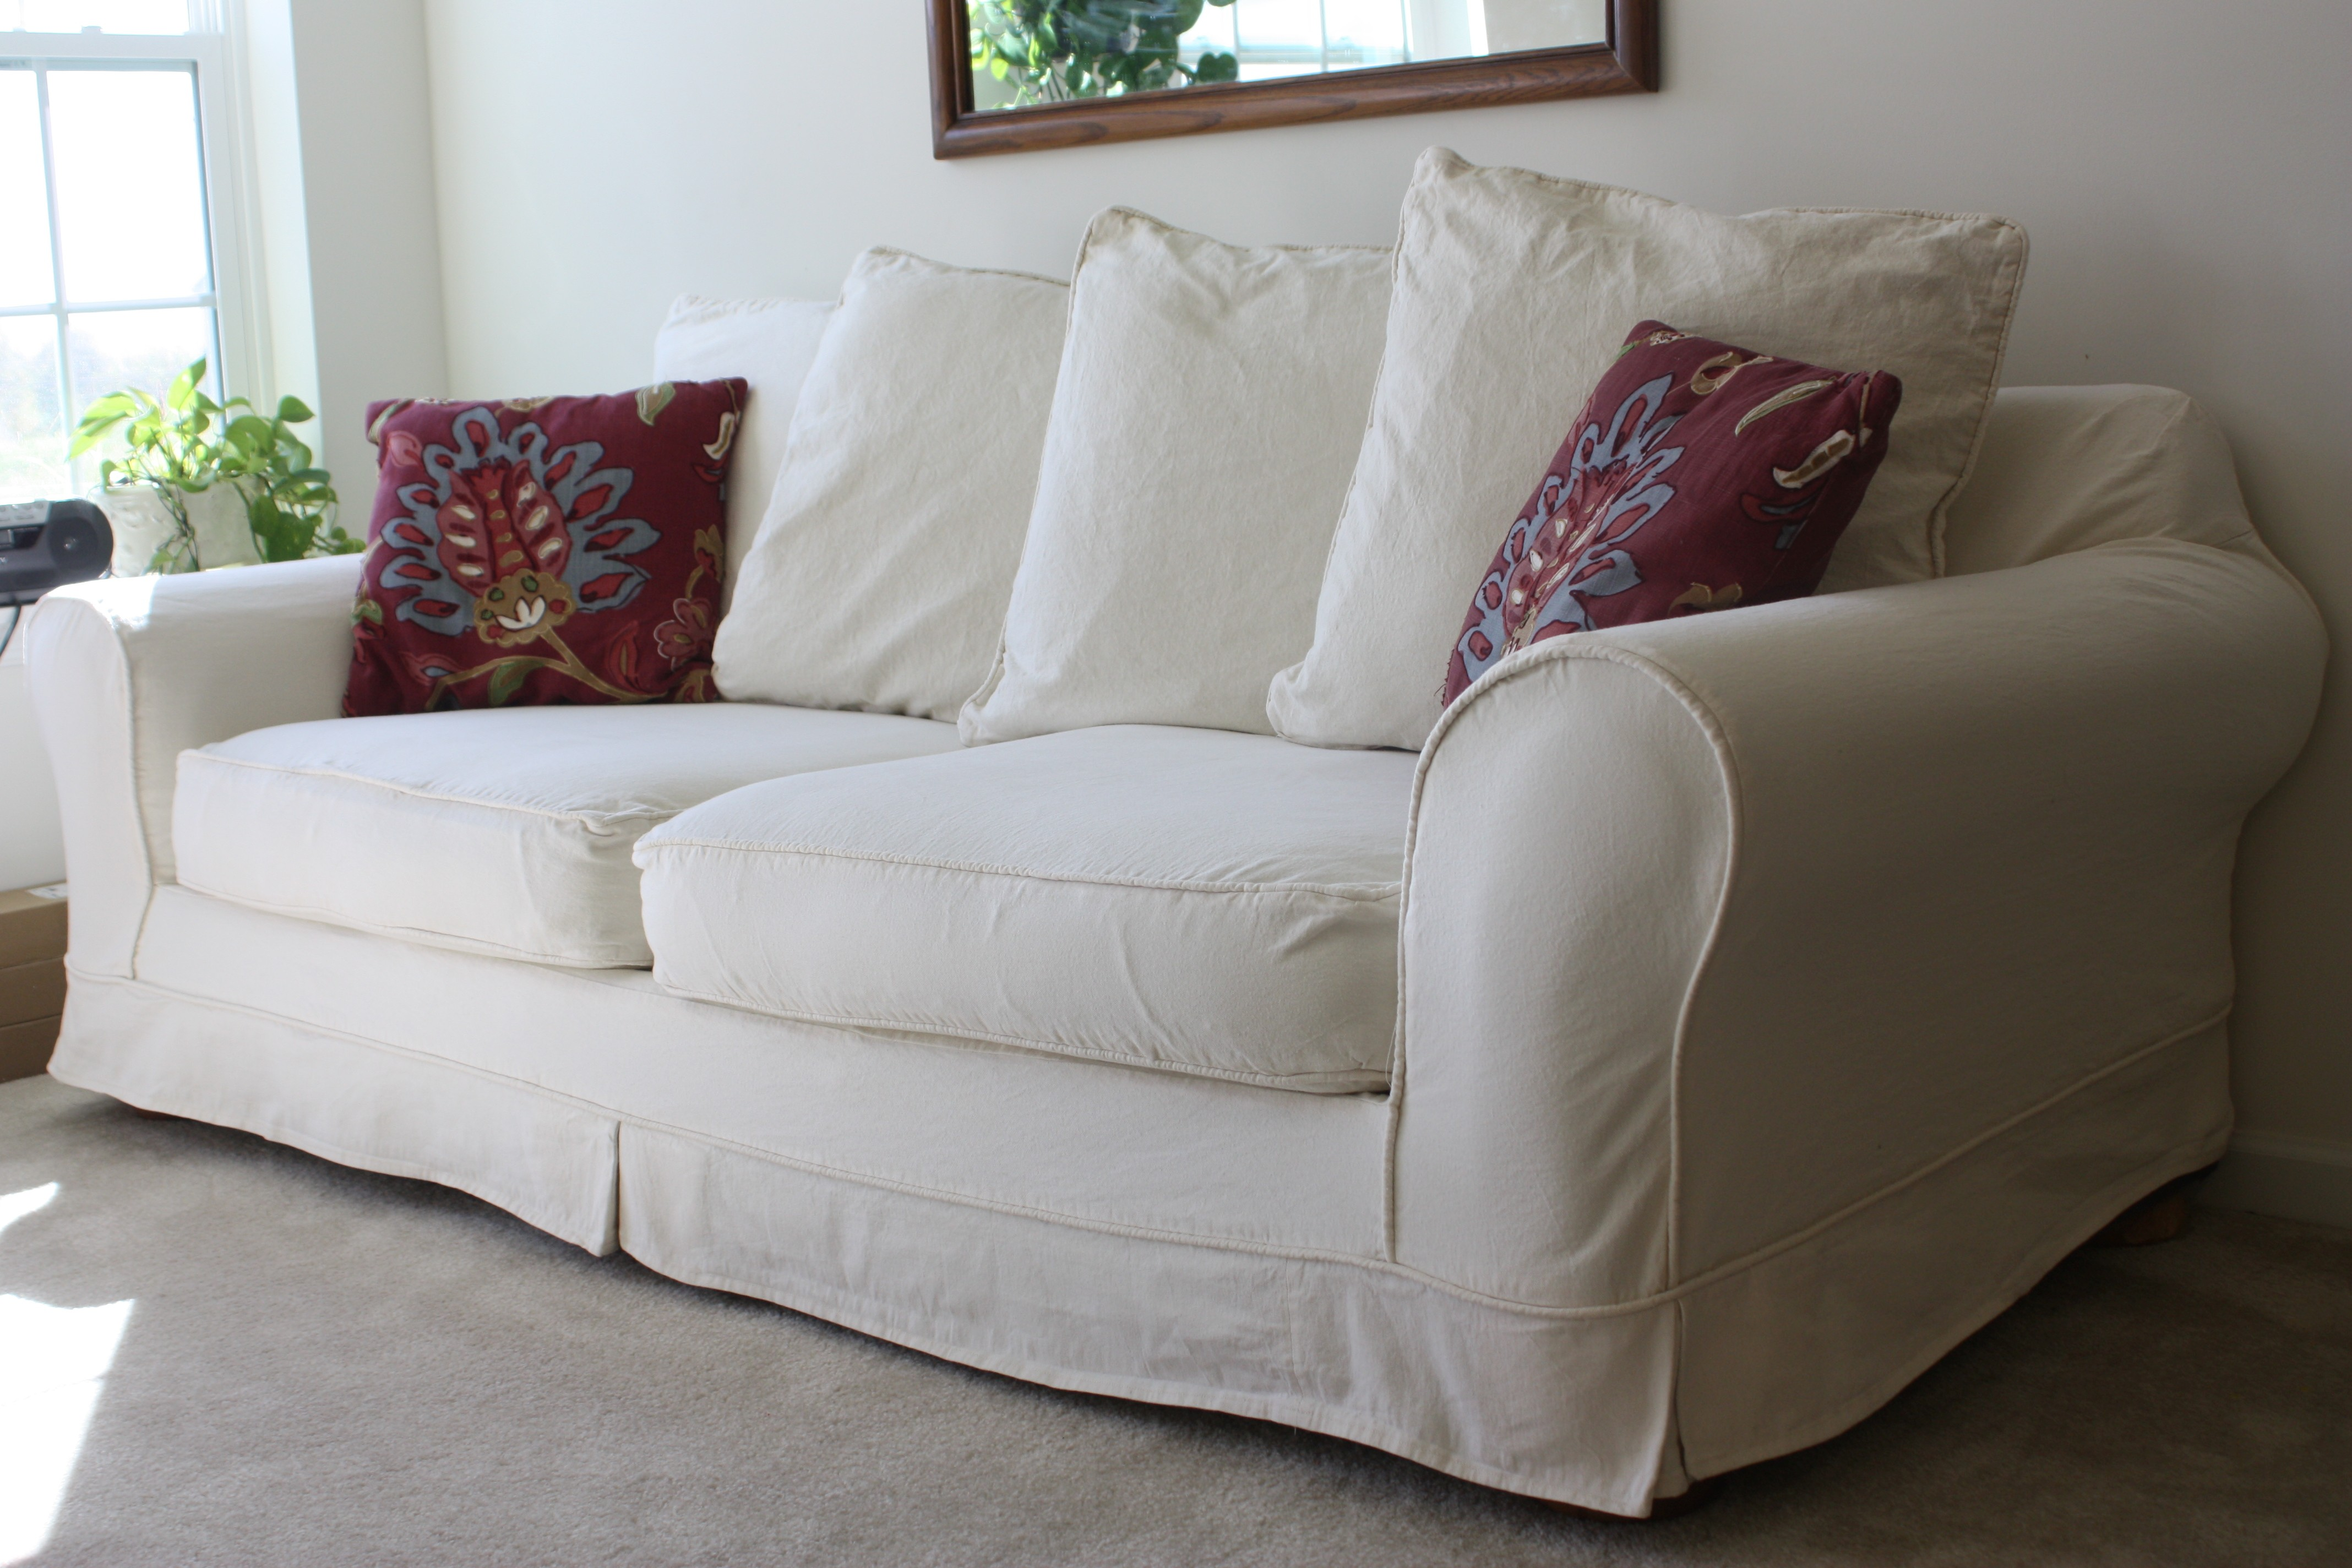 White sofa Slipcover Awesome Perfect F White sofa Slipcover Modern sofa Ideas with F Decoration